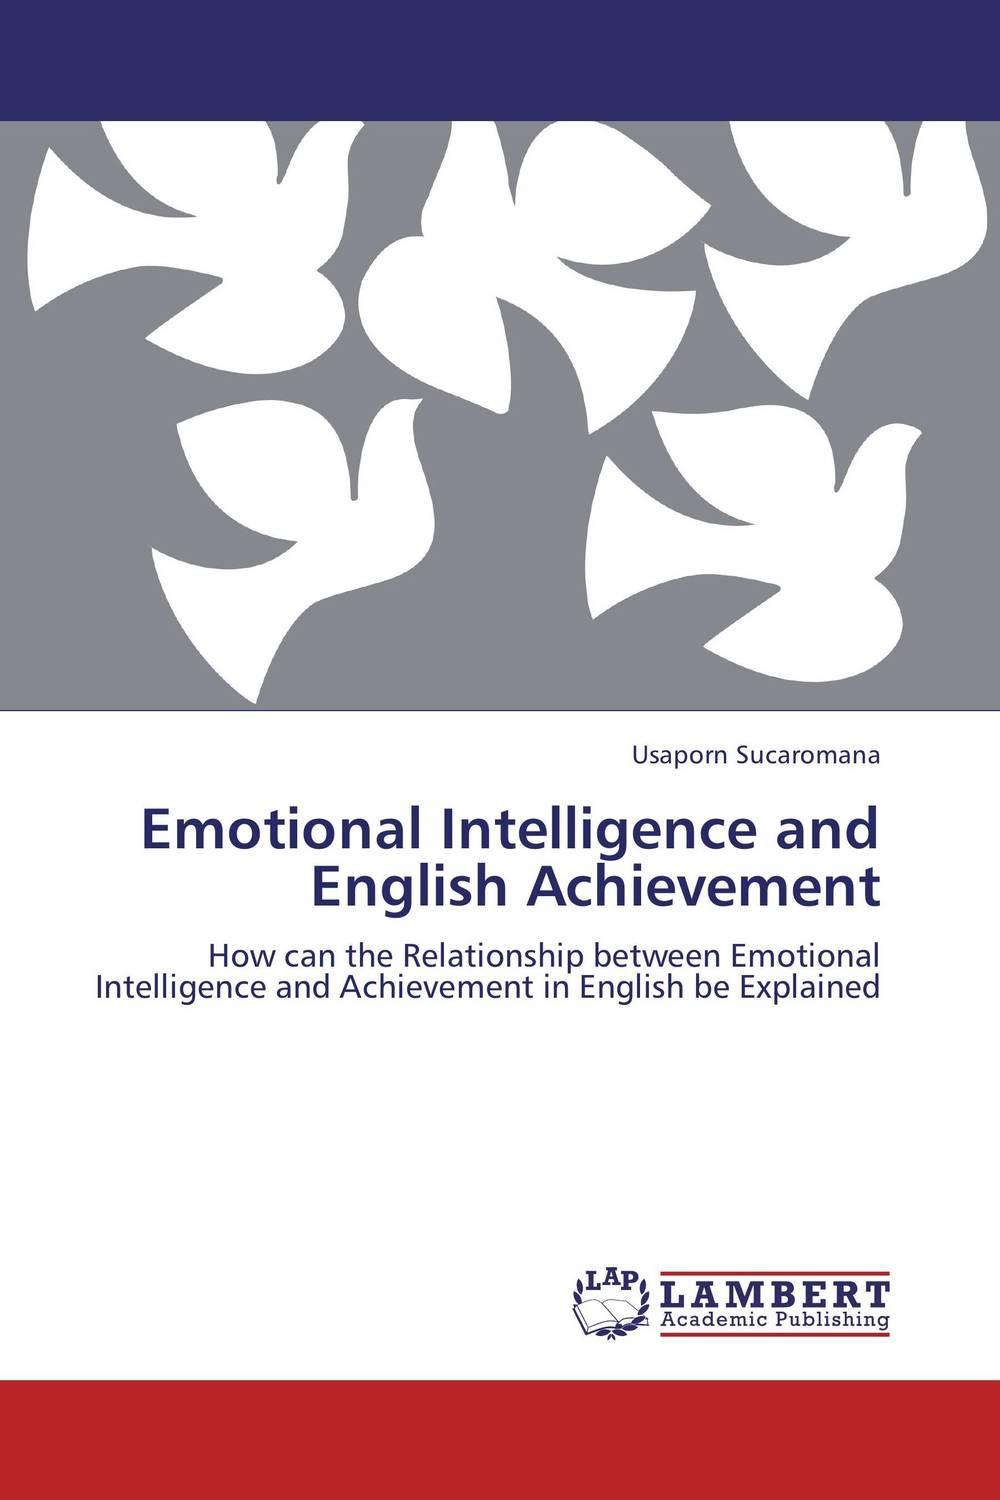 Emotional Intelligence and English Achievement diana giddon unequaled tips for building a successful career through emotional intelligence